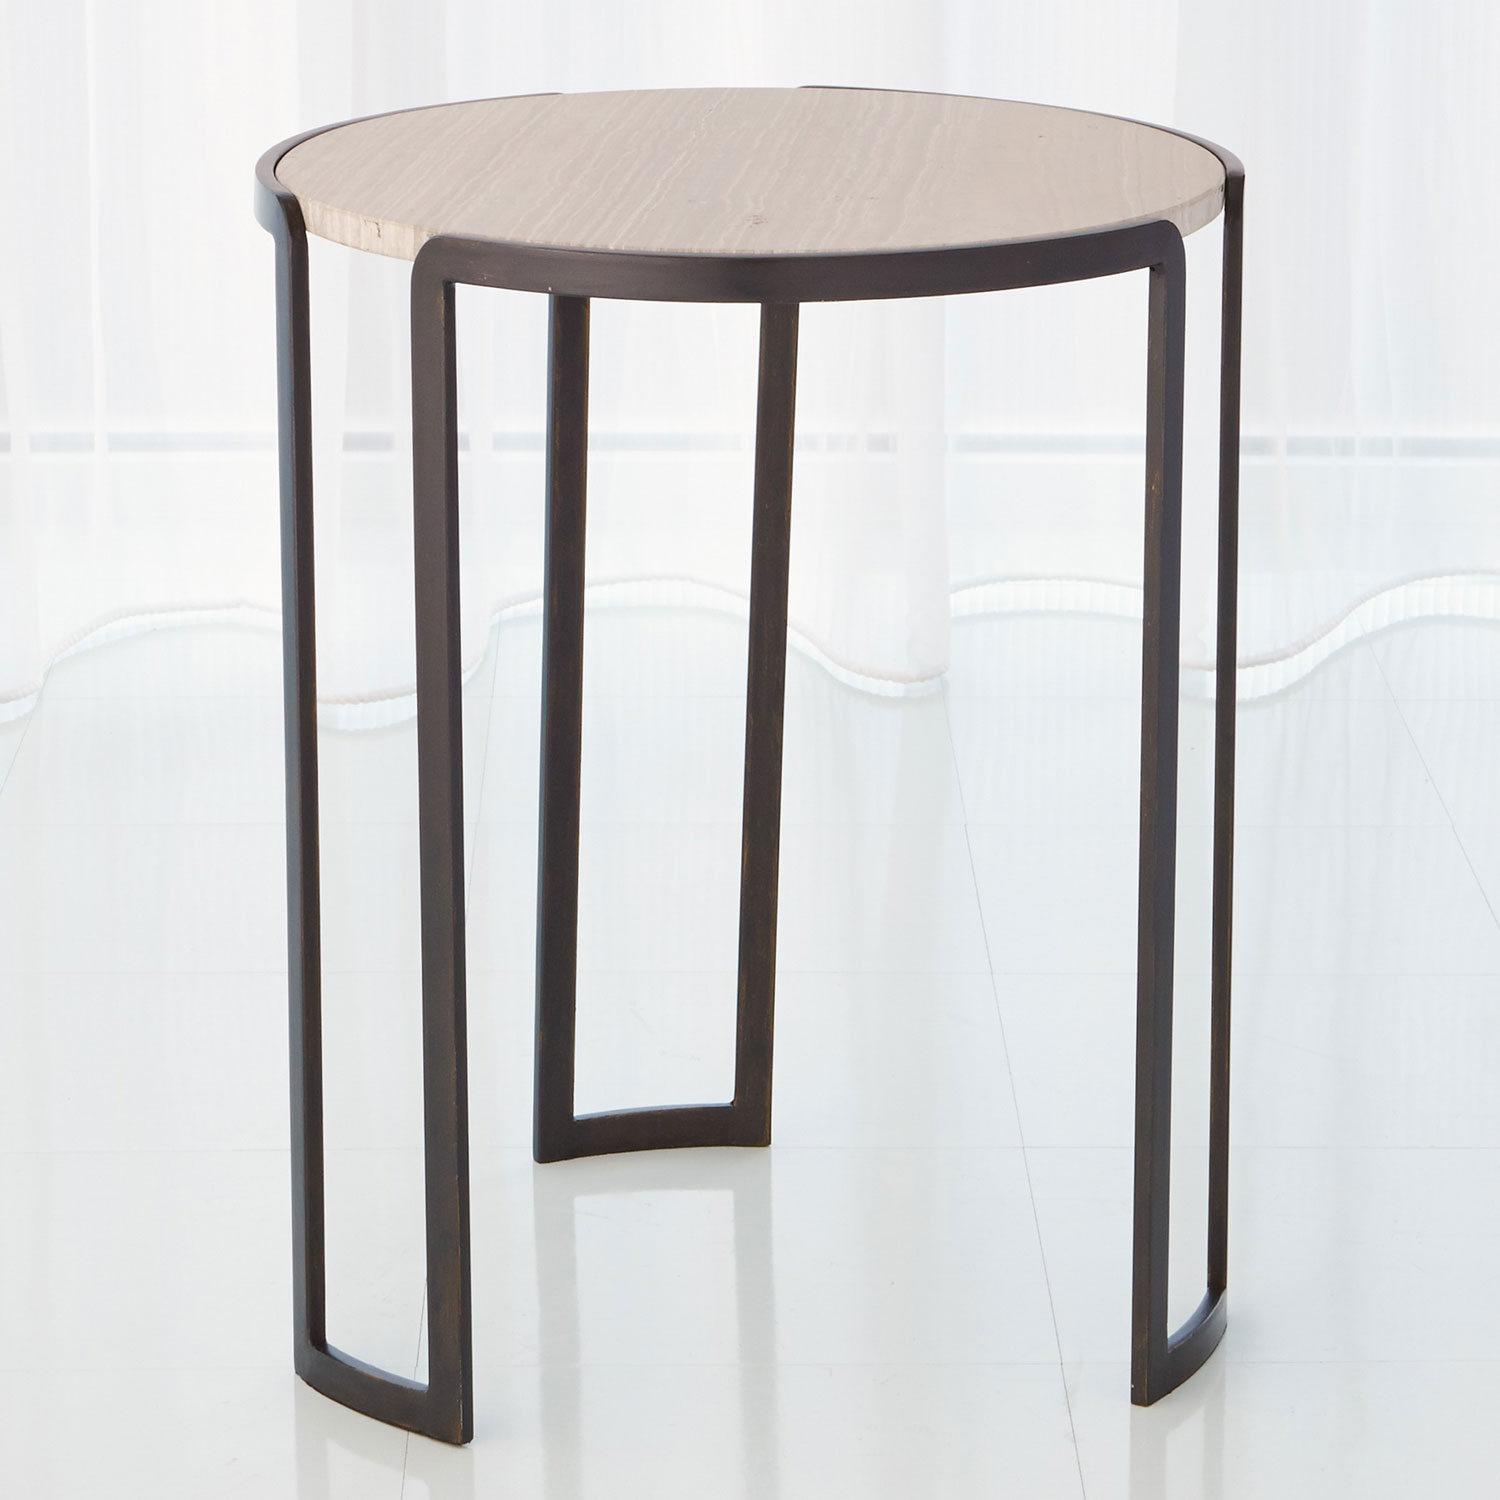 global views studio bronze channel accent table bellacor clarissa metal wooden legs office furniture coffee styling windham door cabinet gray adirondack chairs tiffany stained